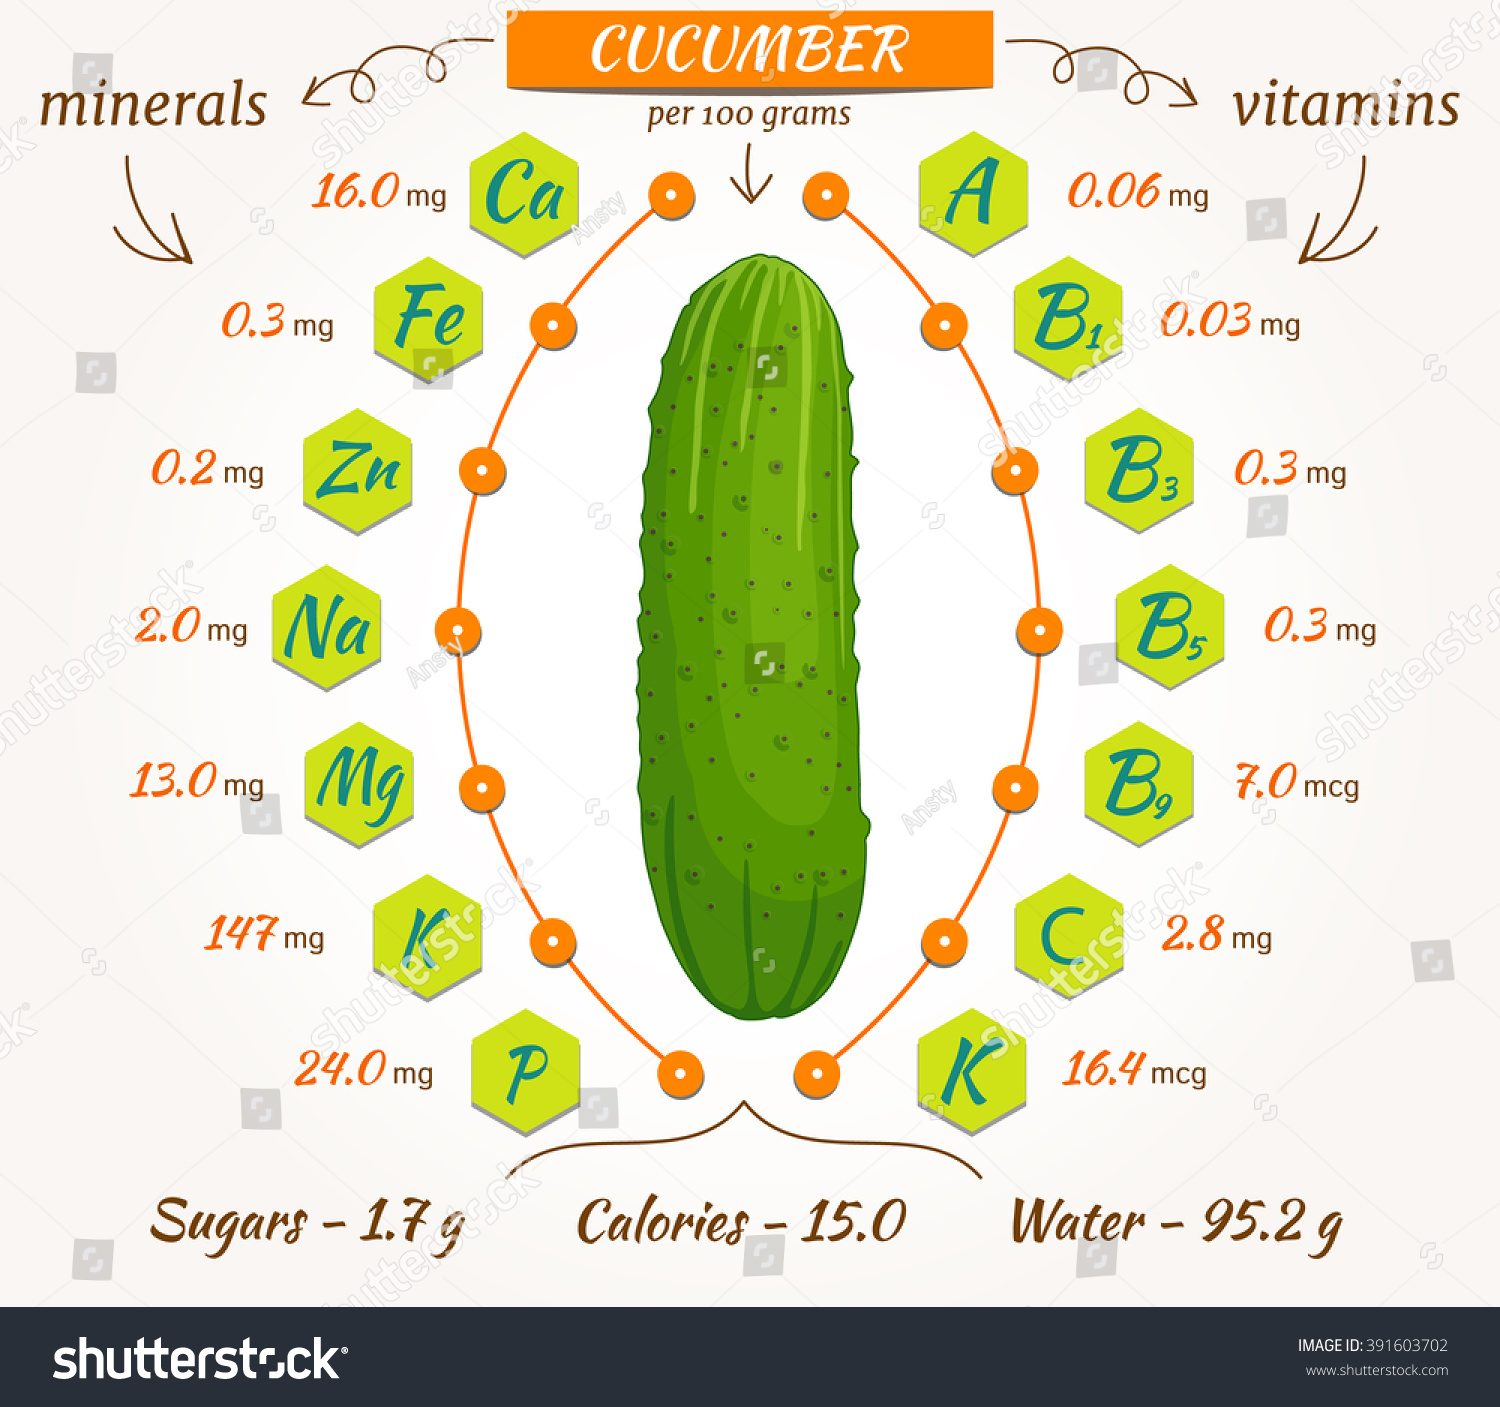 What are the vitamins in cucumbers and tomatoes? 95